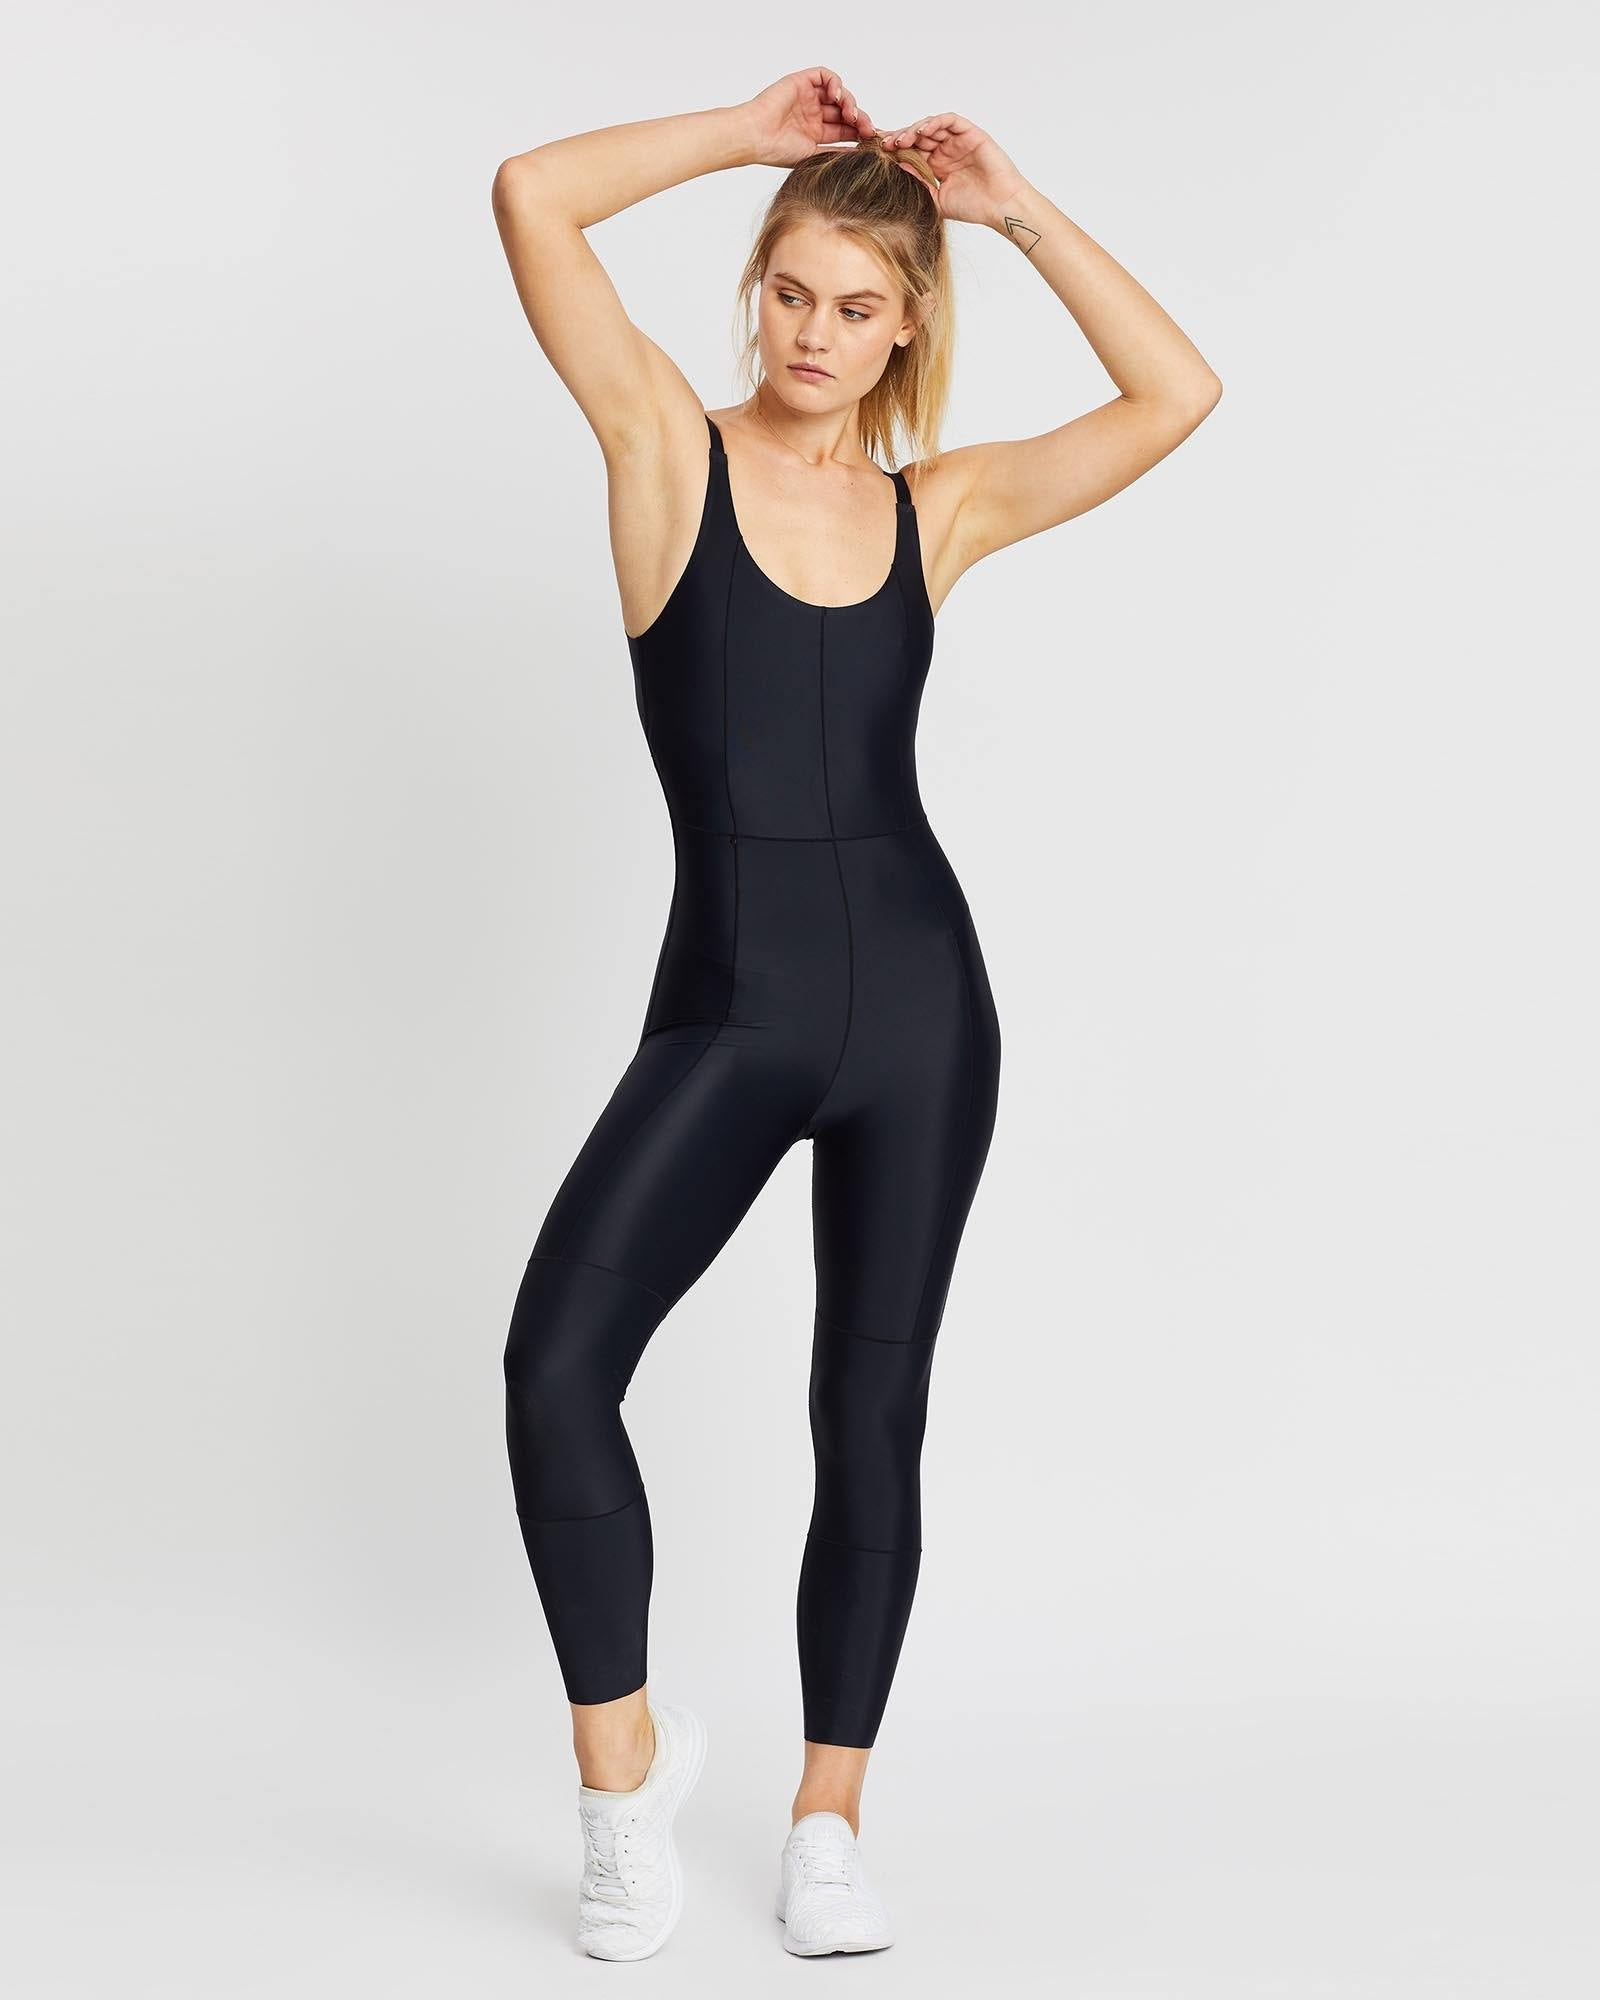 Companion Transverse Long Bodysuit - More Body